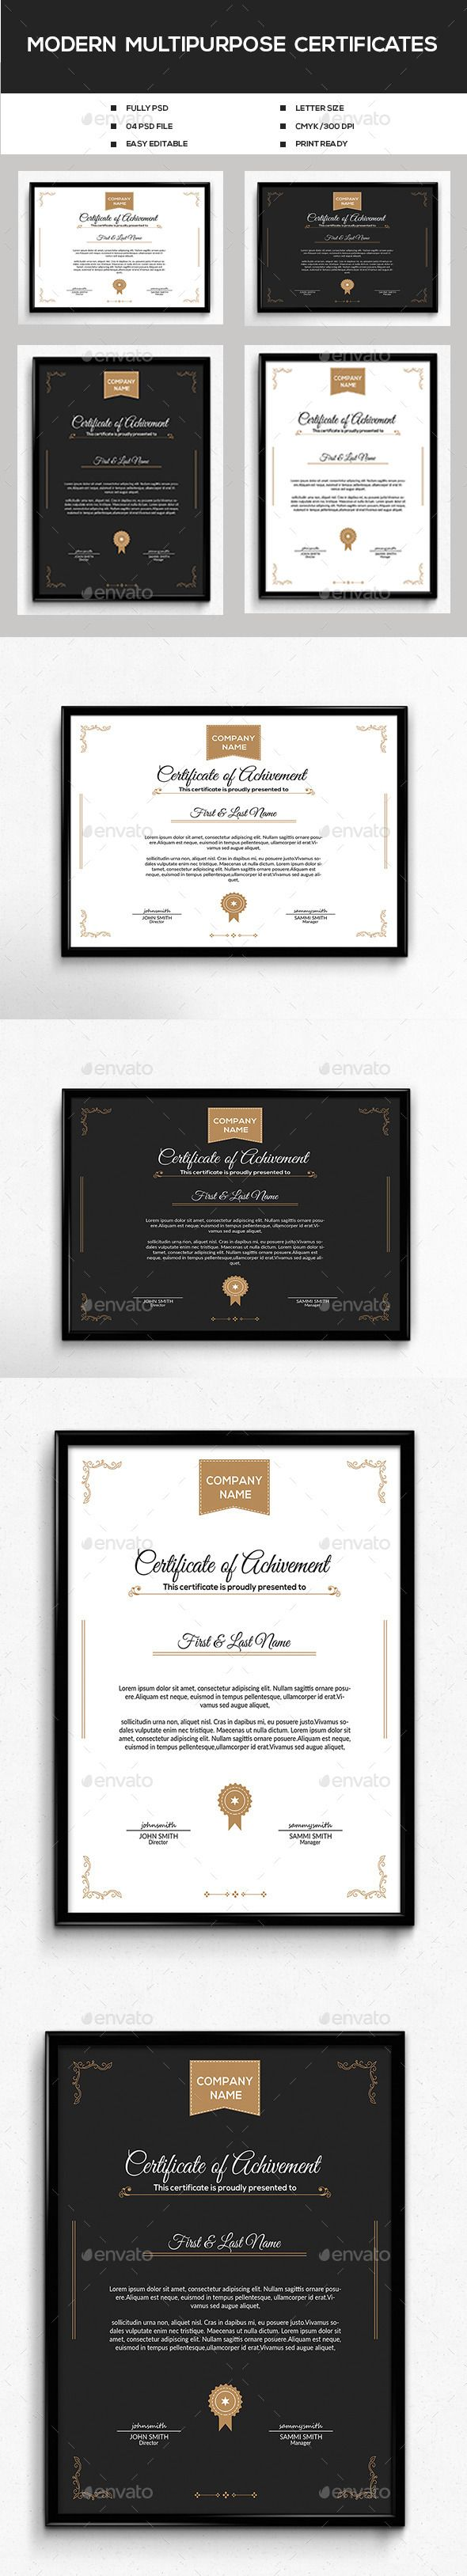 #Modern #Multipurpose Certificates - #Certificates #Stationery Download here: https://graphicriver.net/item/modern-multipurpose-certificates/12247912?ref=alena994